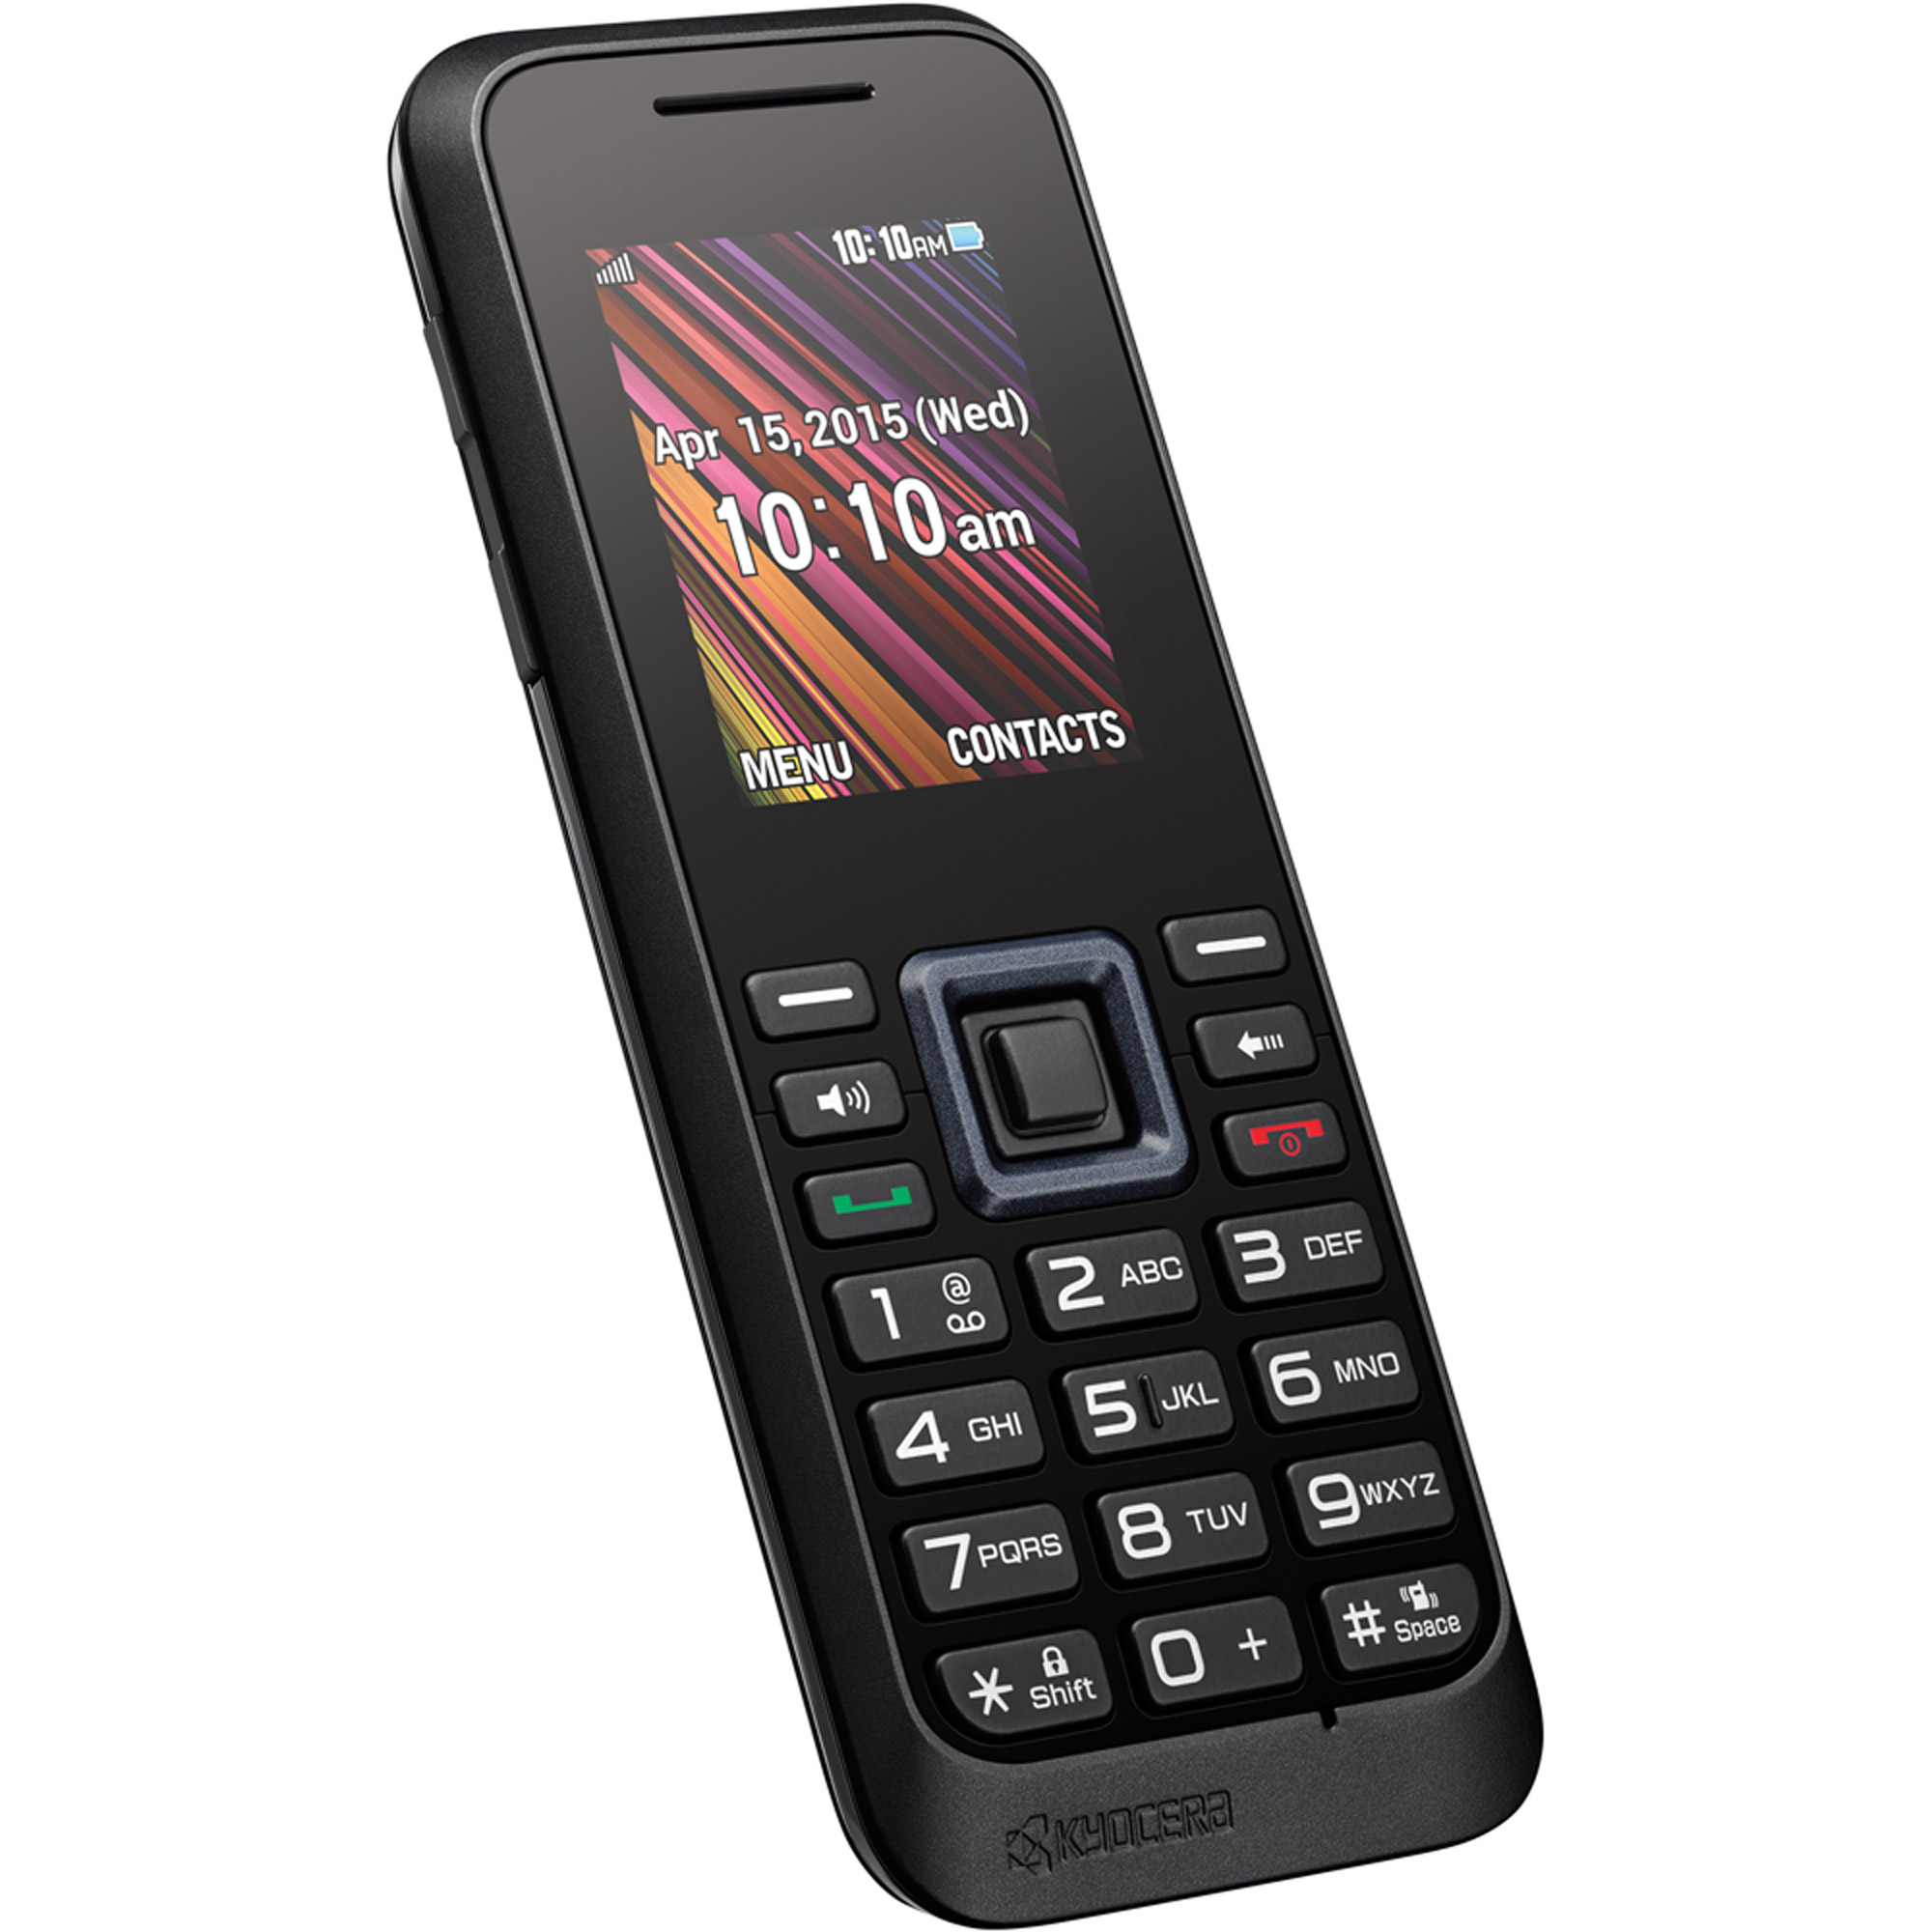 T-Mobile Kyocera Rally Prepaid Cell Phone, Graphite Gray